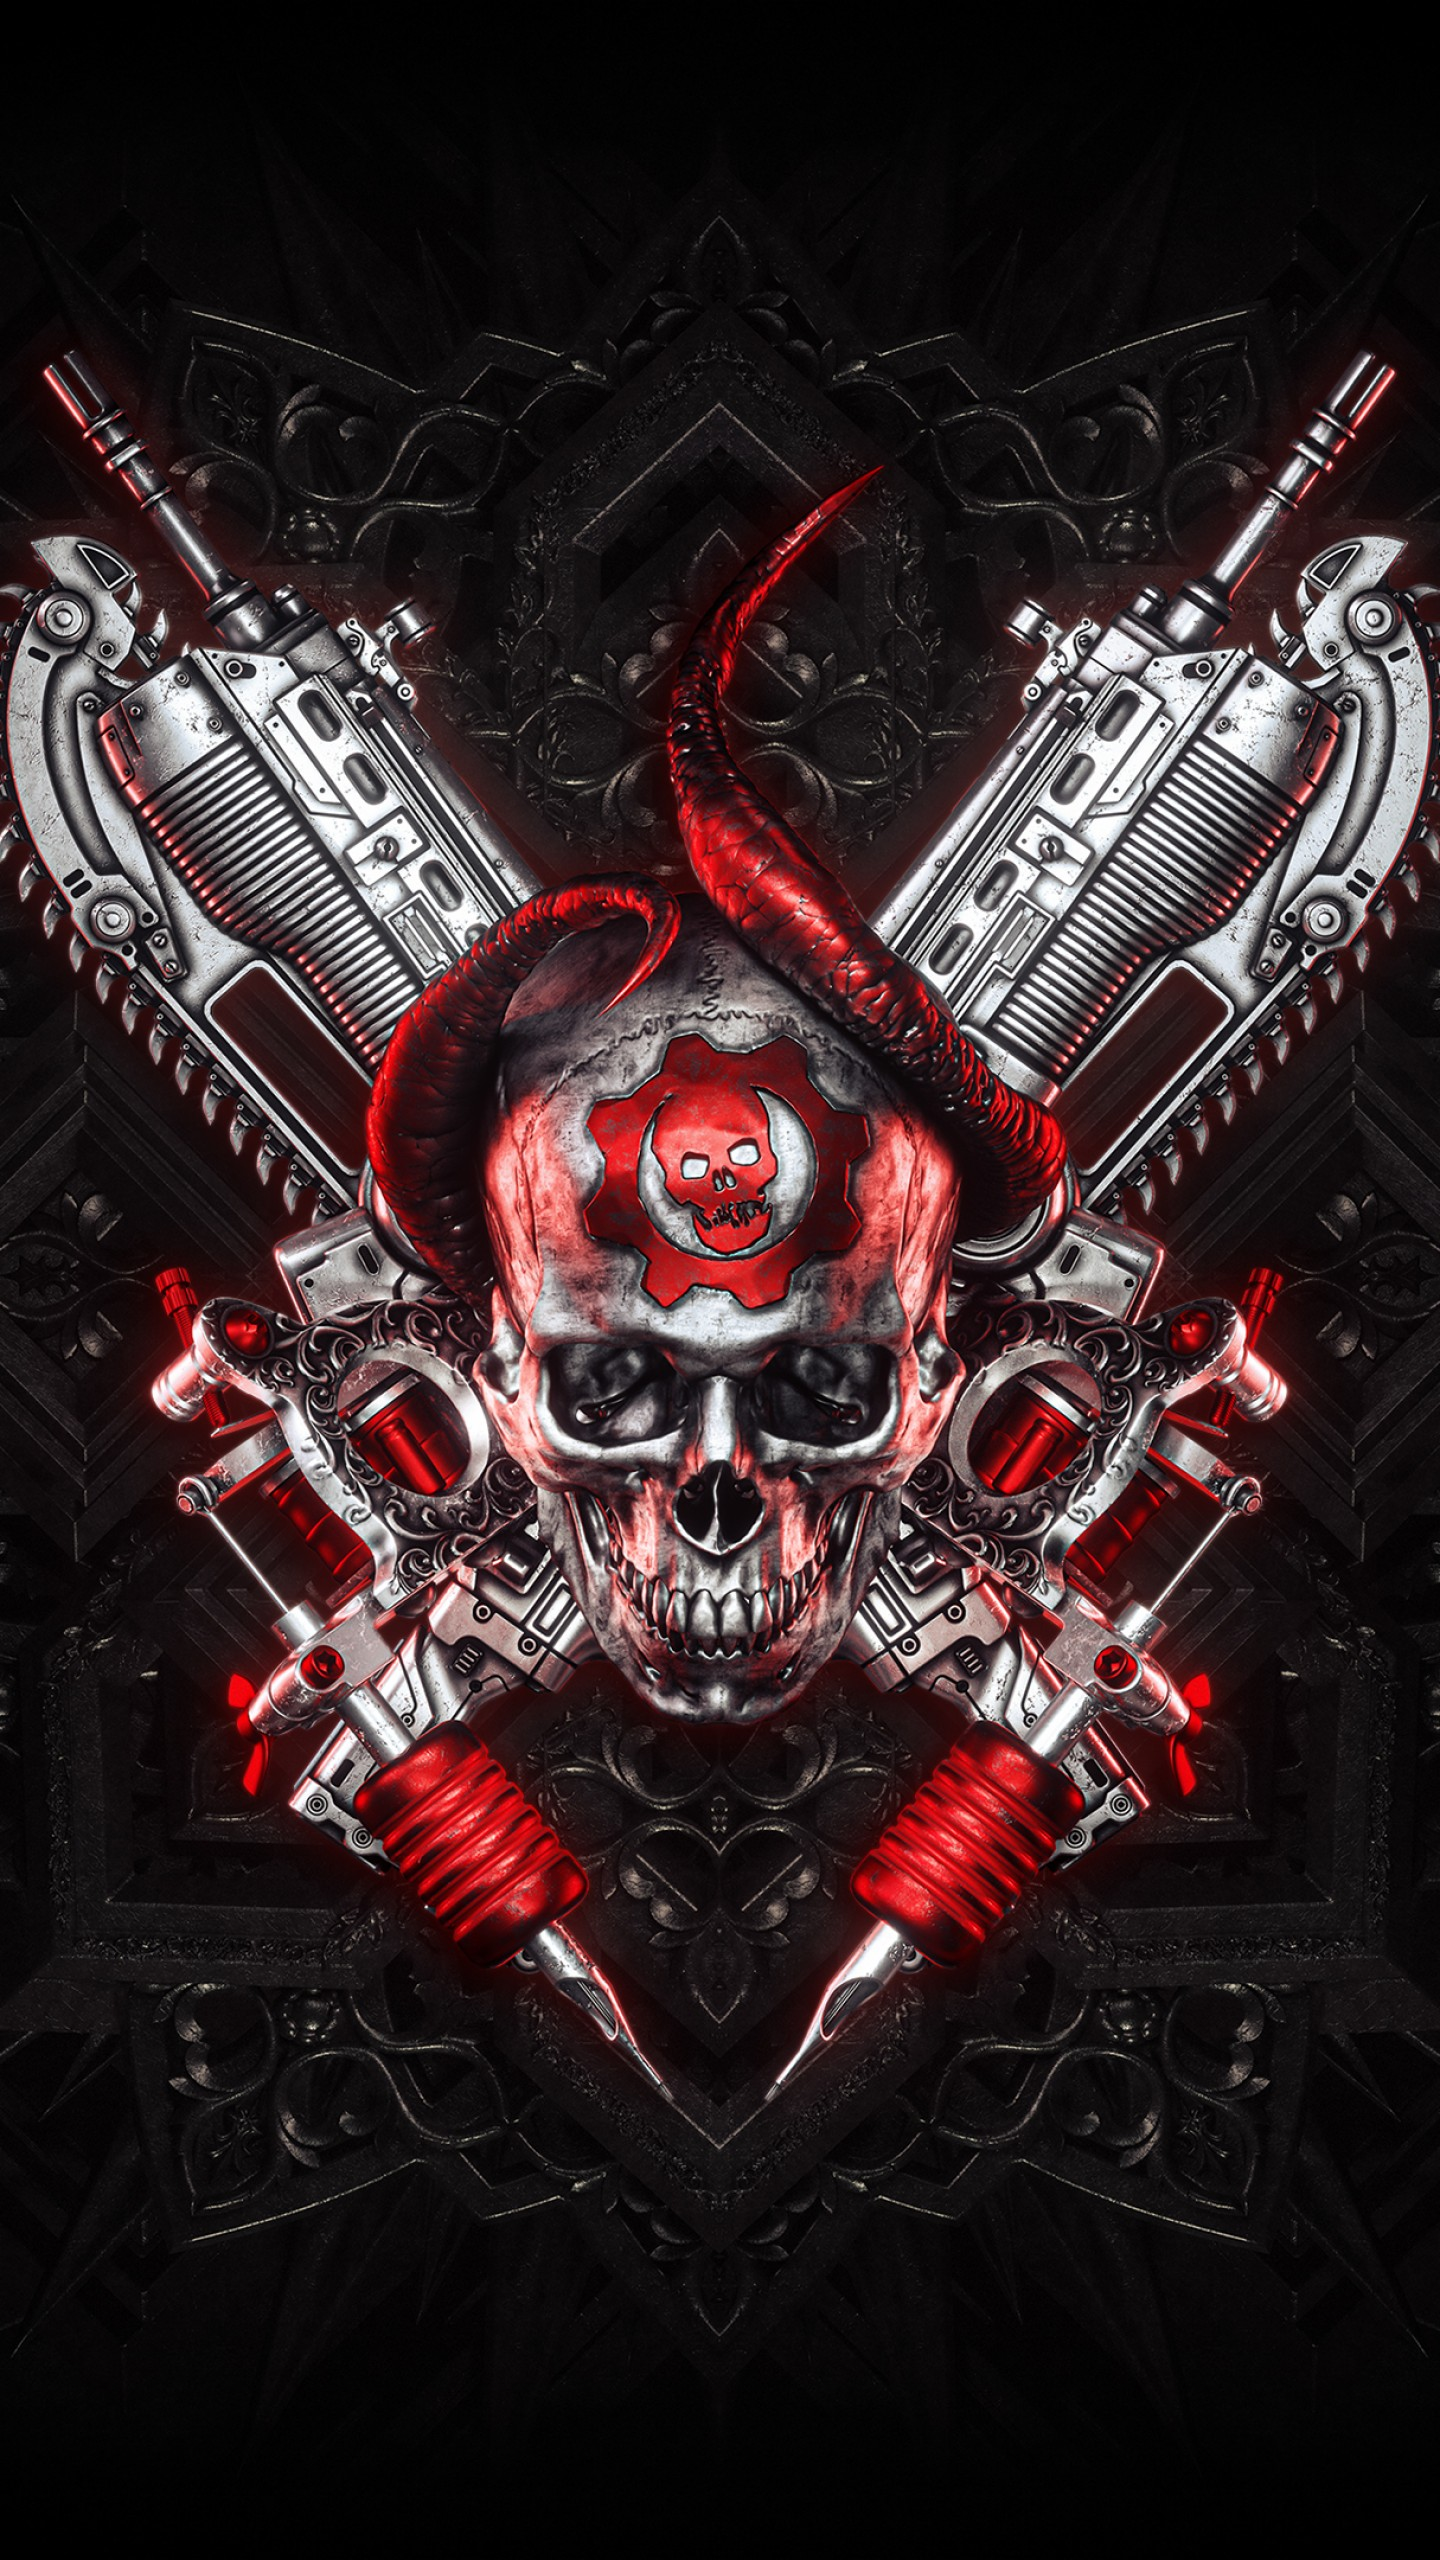 Tattoo Wallpaper For Mobile 1440x2560 Download Hd Wallpaper Wallpapertip Posted by admin thursday, june 5, 2014. tattoo wallpaper for mobile 1440x2560